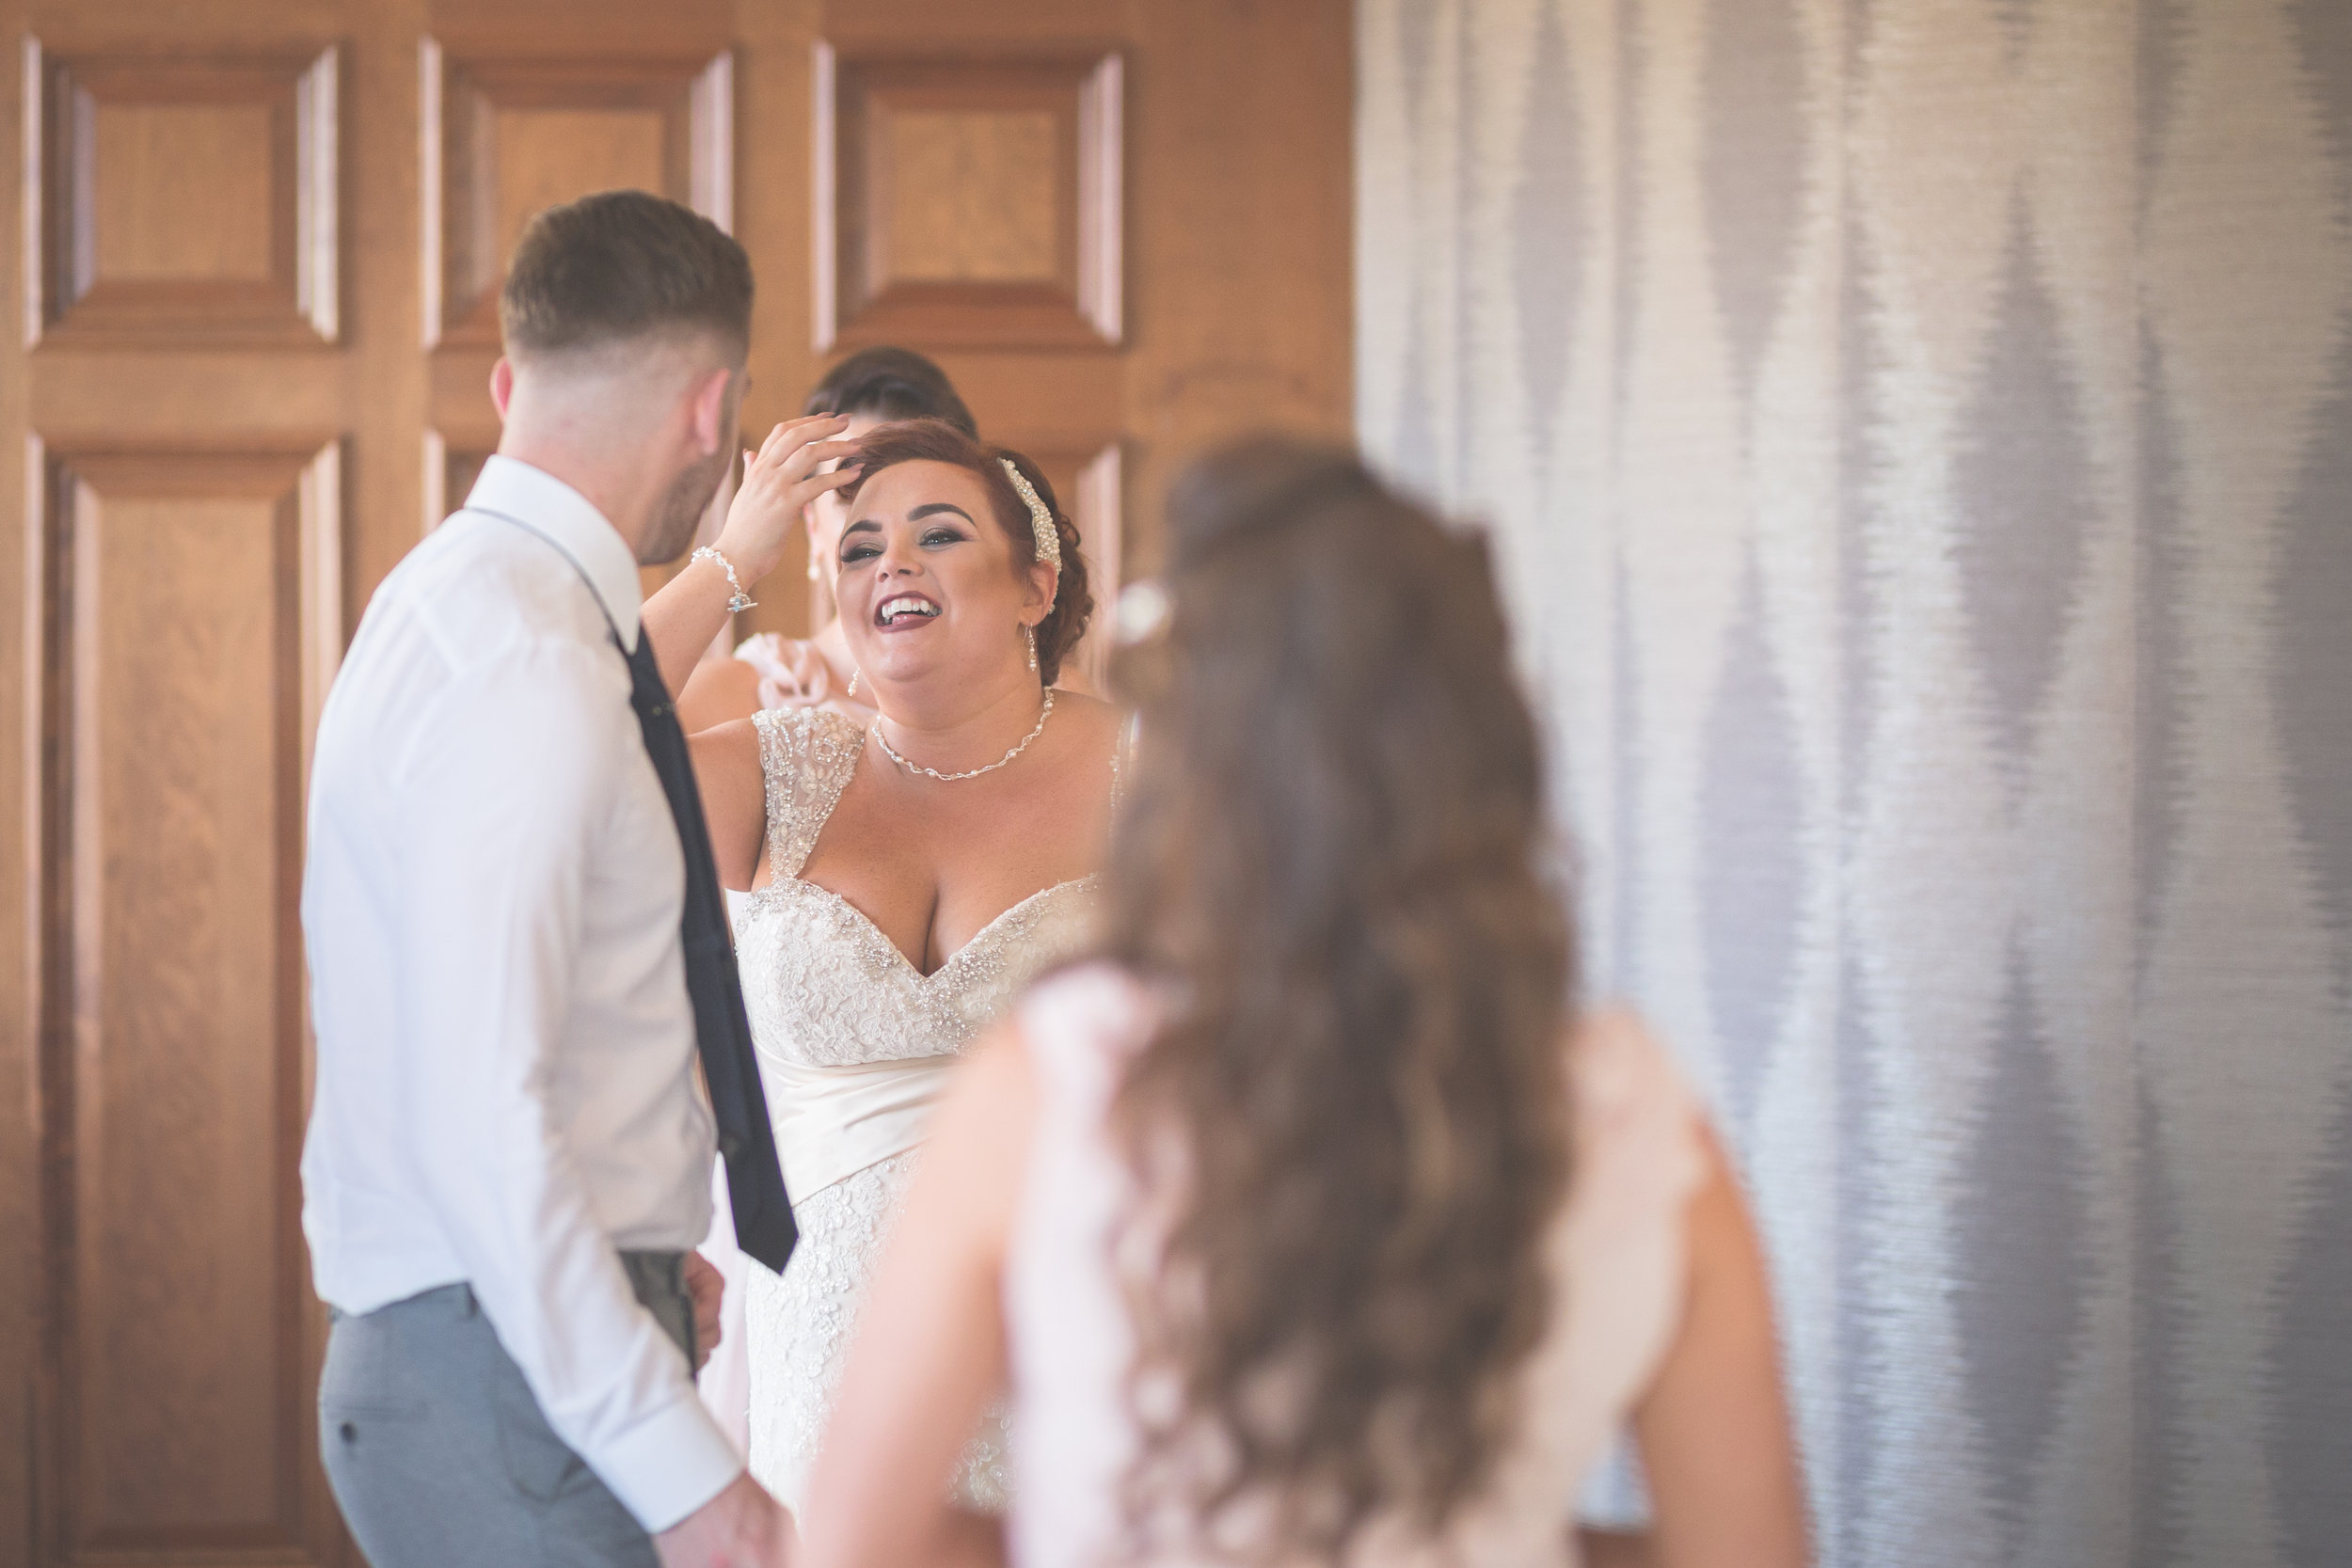 Antoinette & Stephen - Speeches | Brian McEwan Photography | Wedding Photographer Northern Ireland 146.jpg